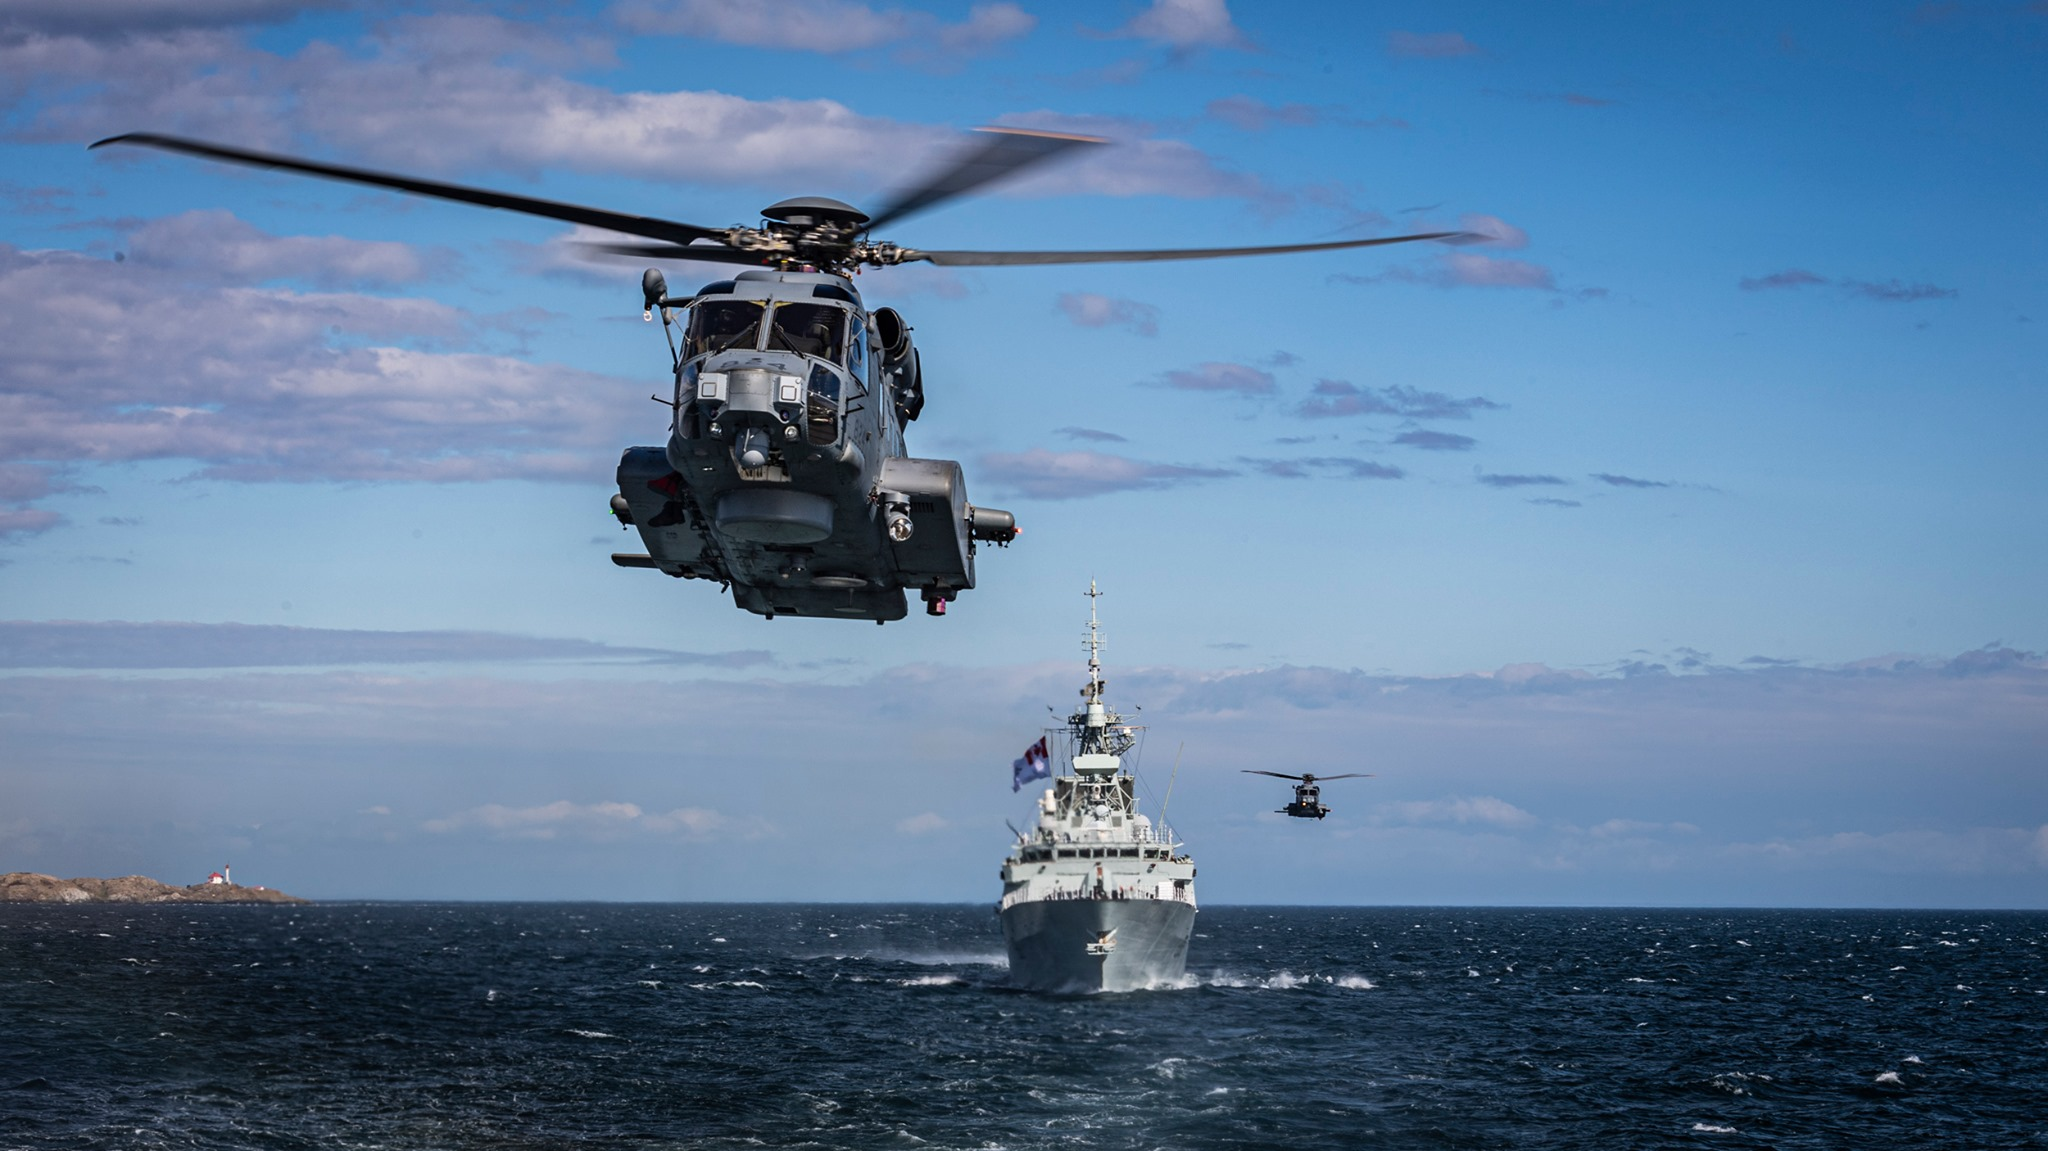 HMC Ships Winnipeg and Regina with embarked CH-148 Cyclone helicopters